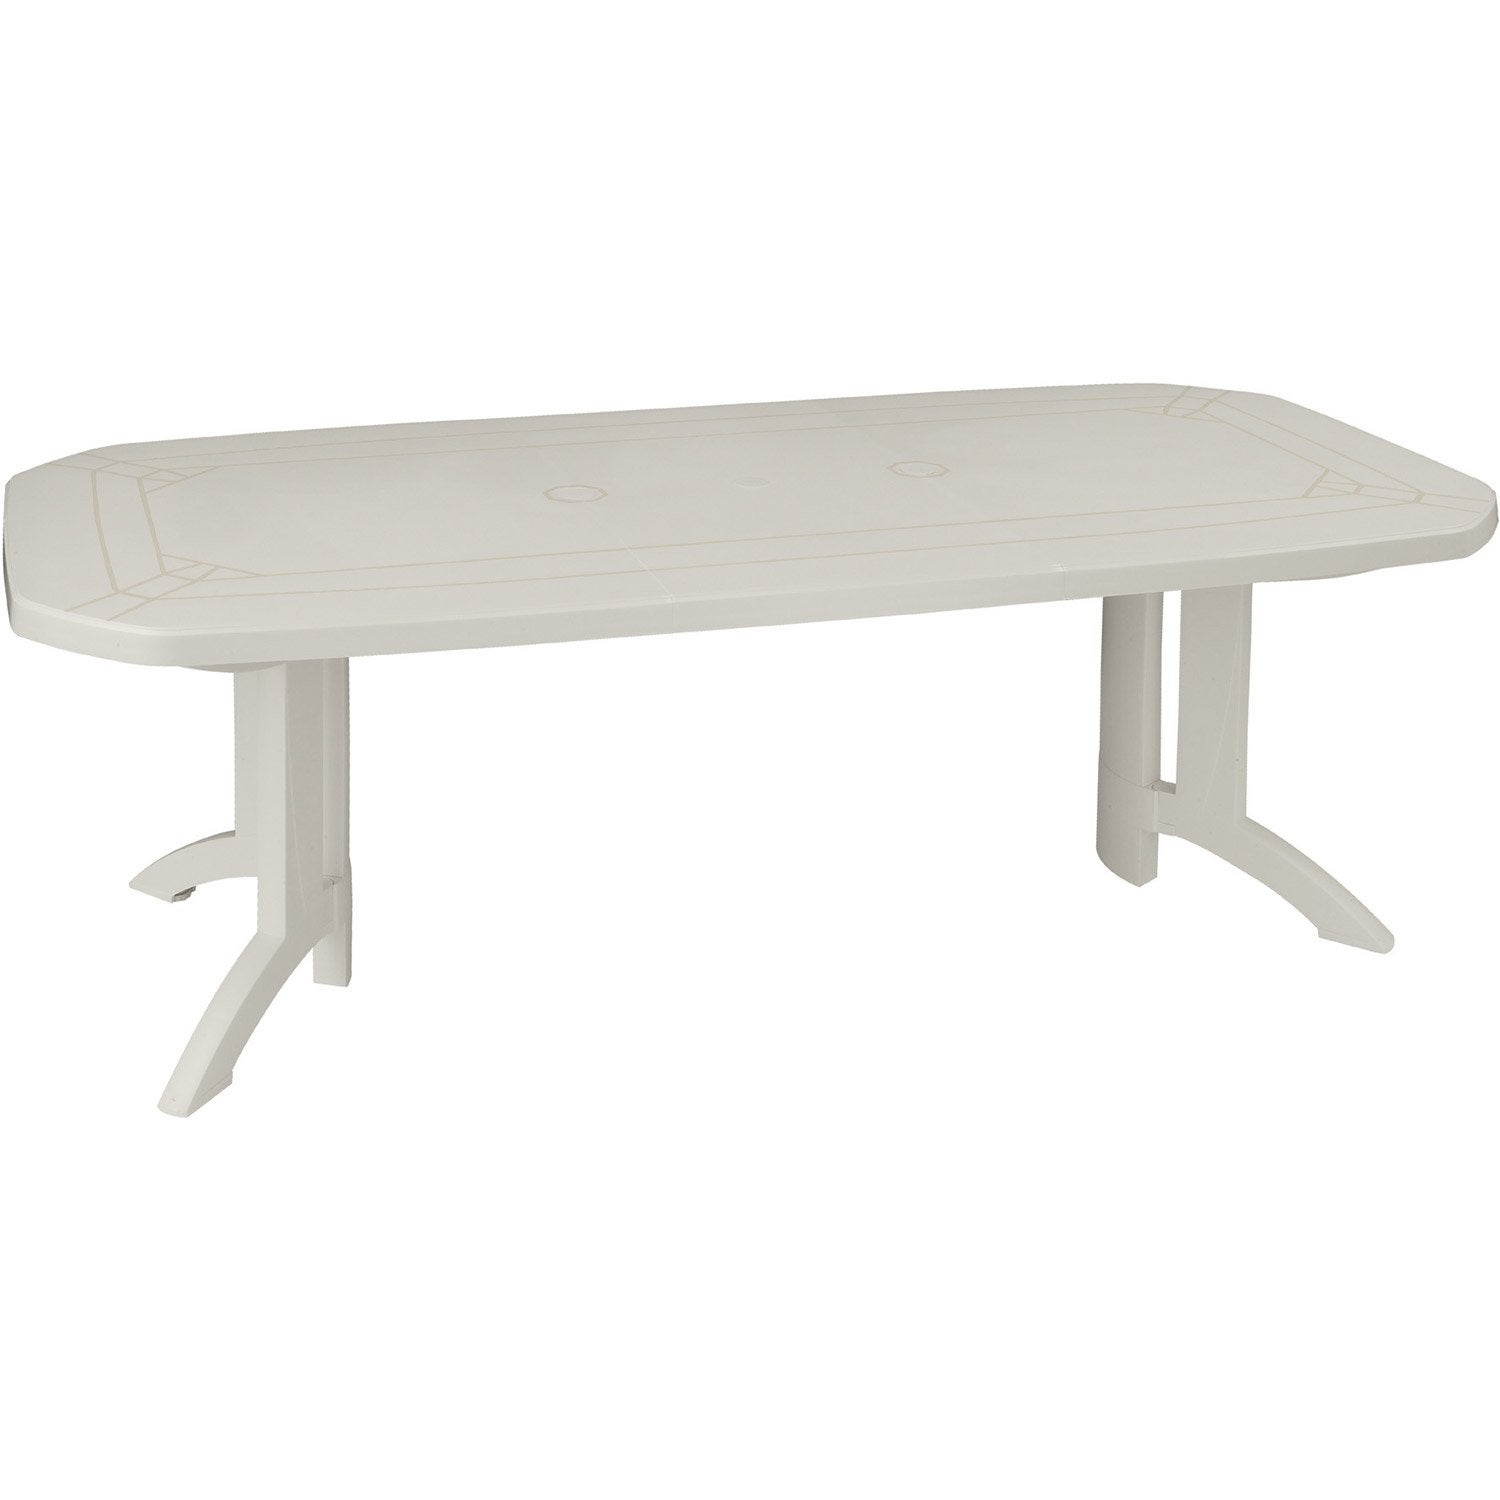 Table de jardin grosfillex v ga rectangulaire blanc 10 personnes leroy merlin - Leroy merlin table jardin ...